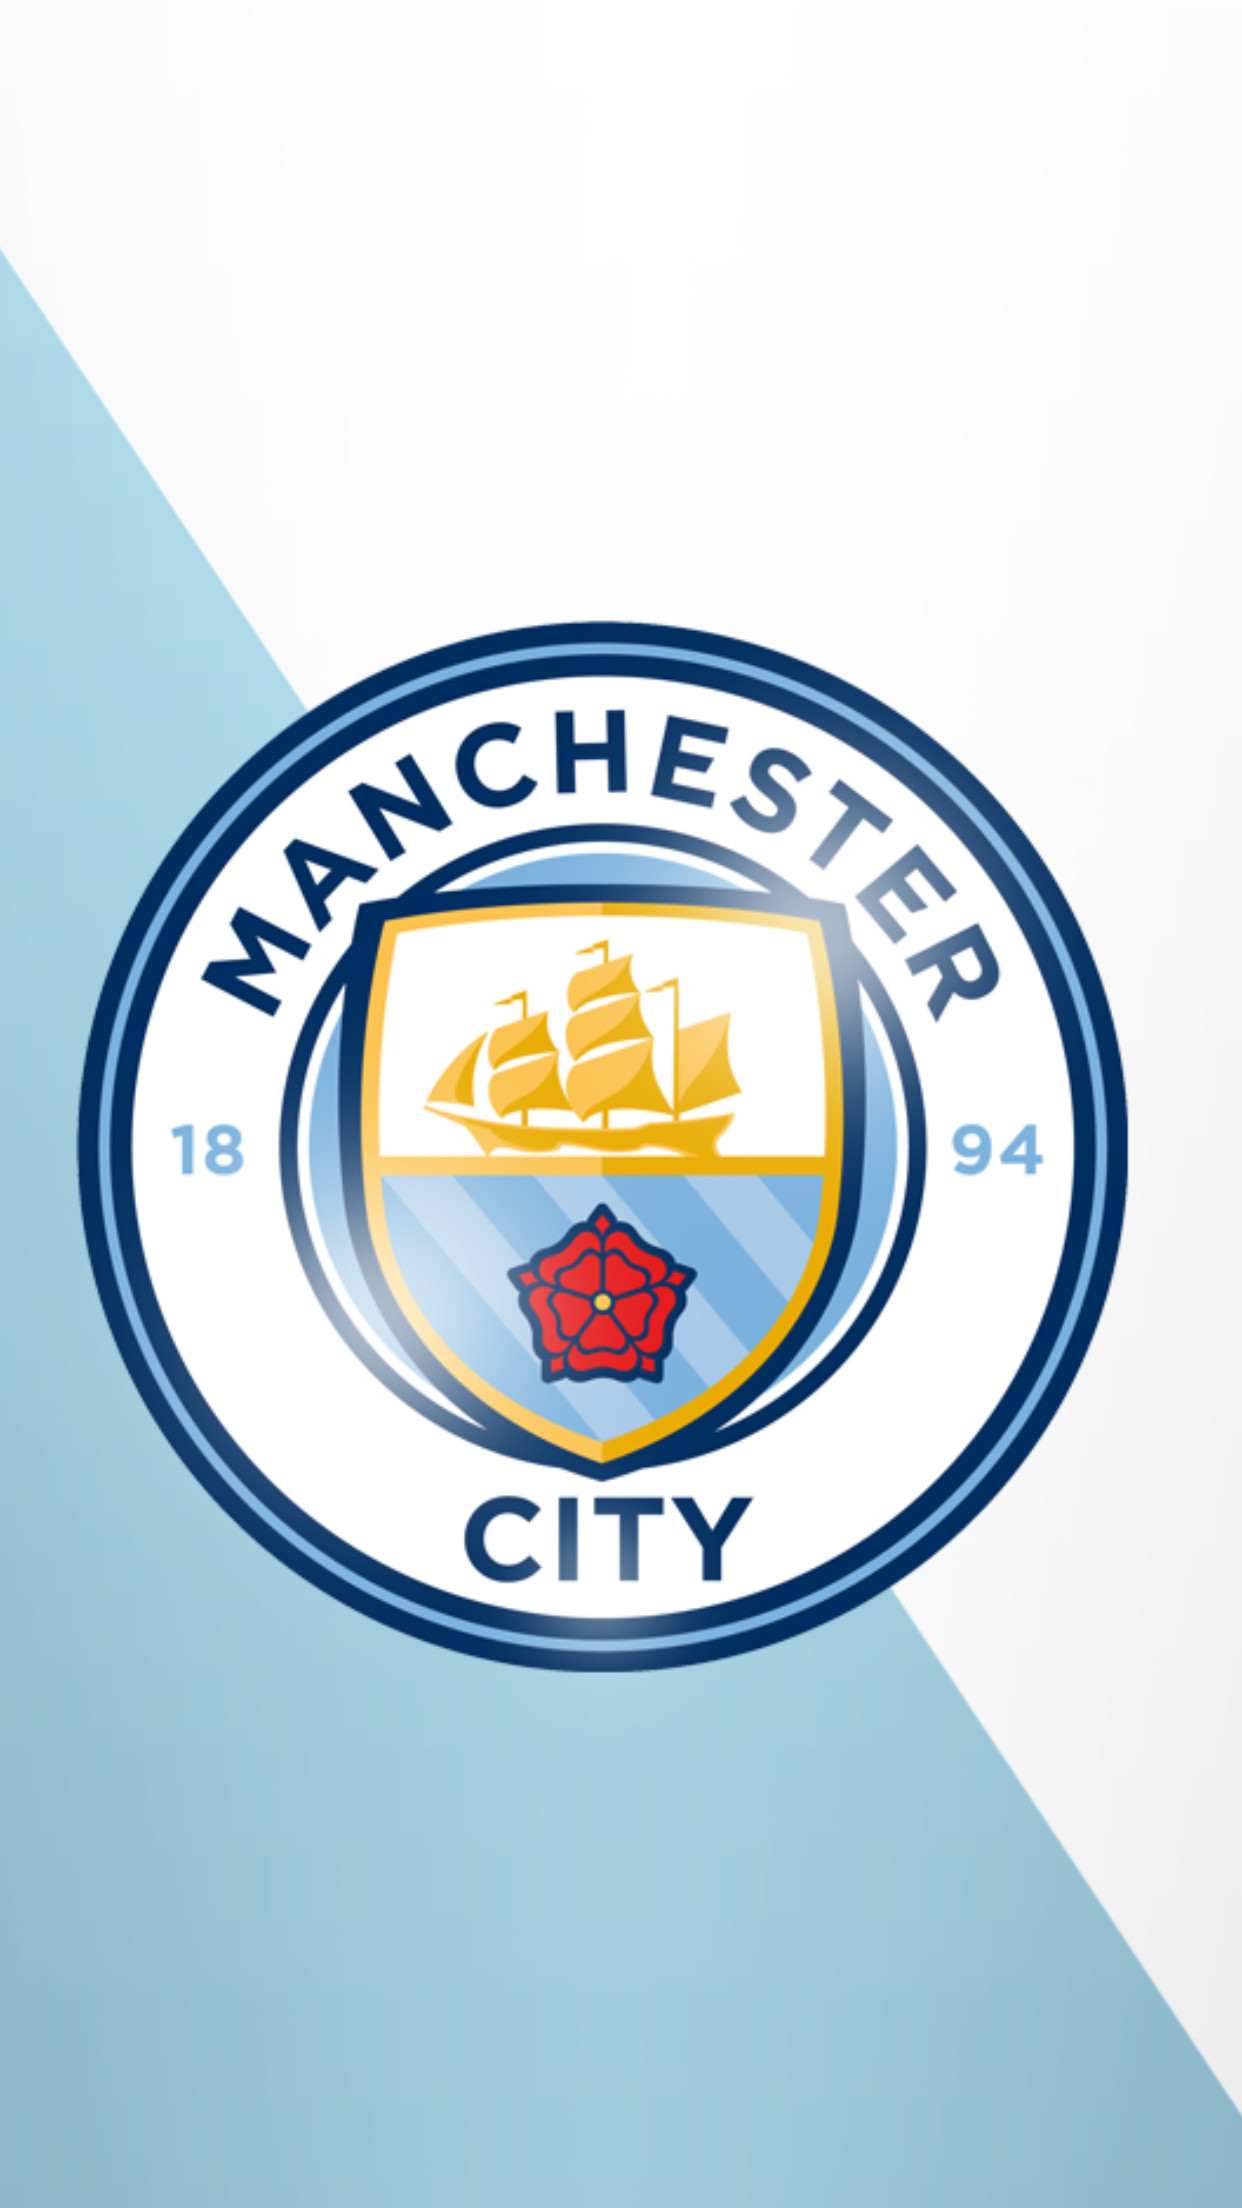 Man City Wallpaper 2017 ·①